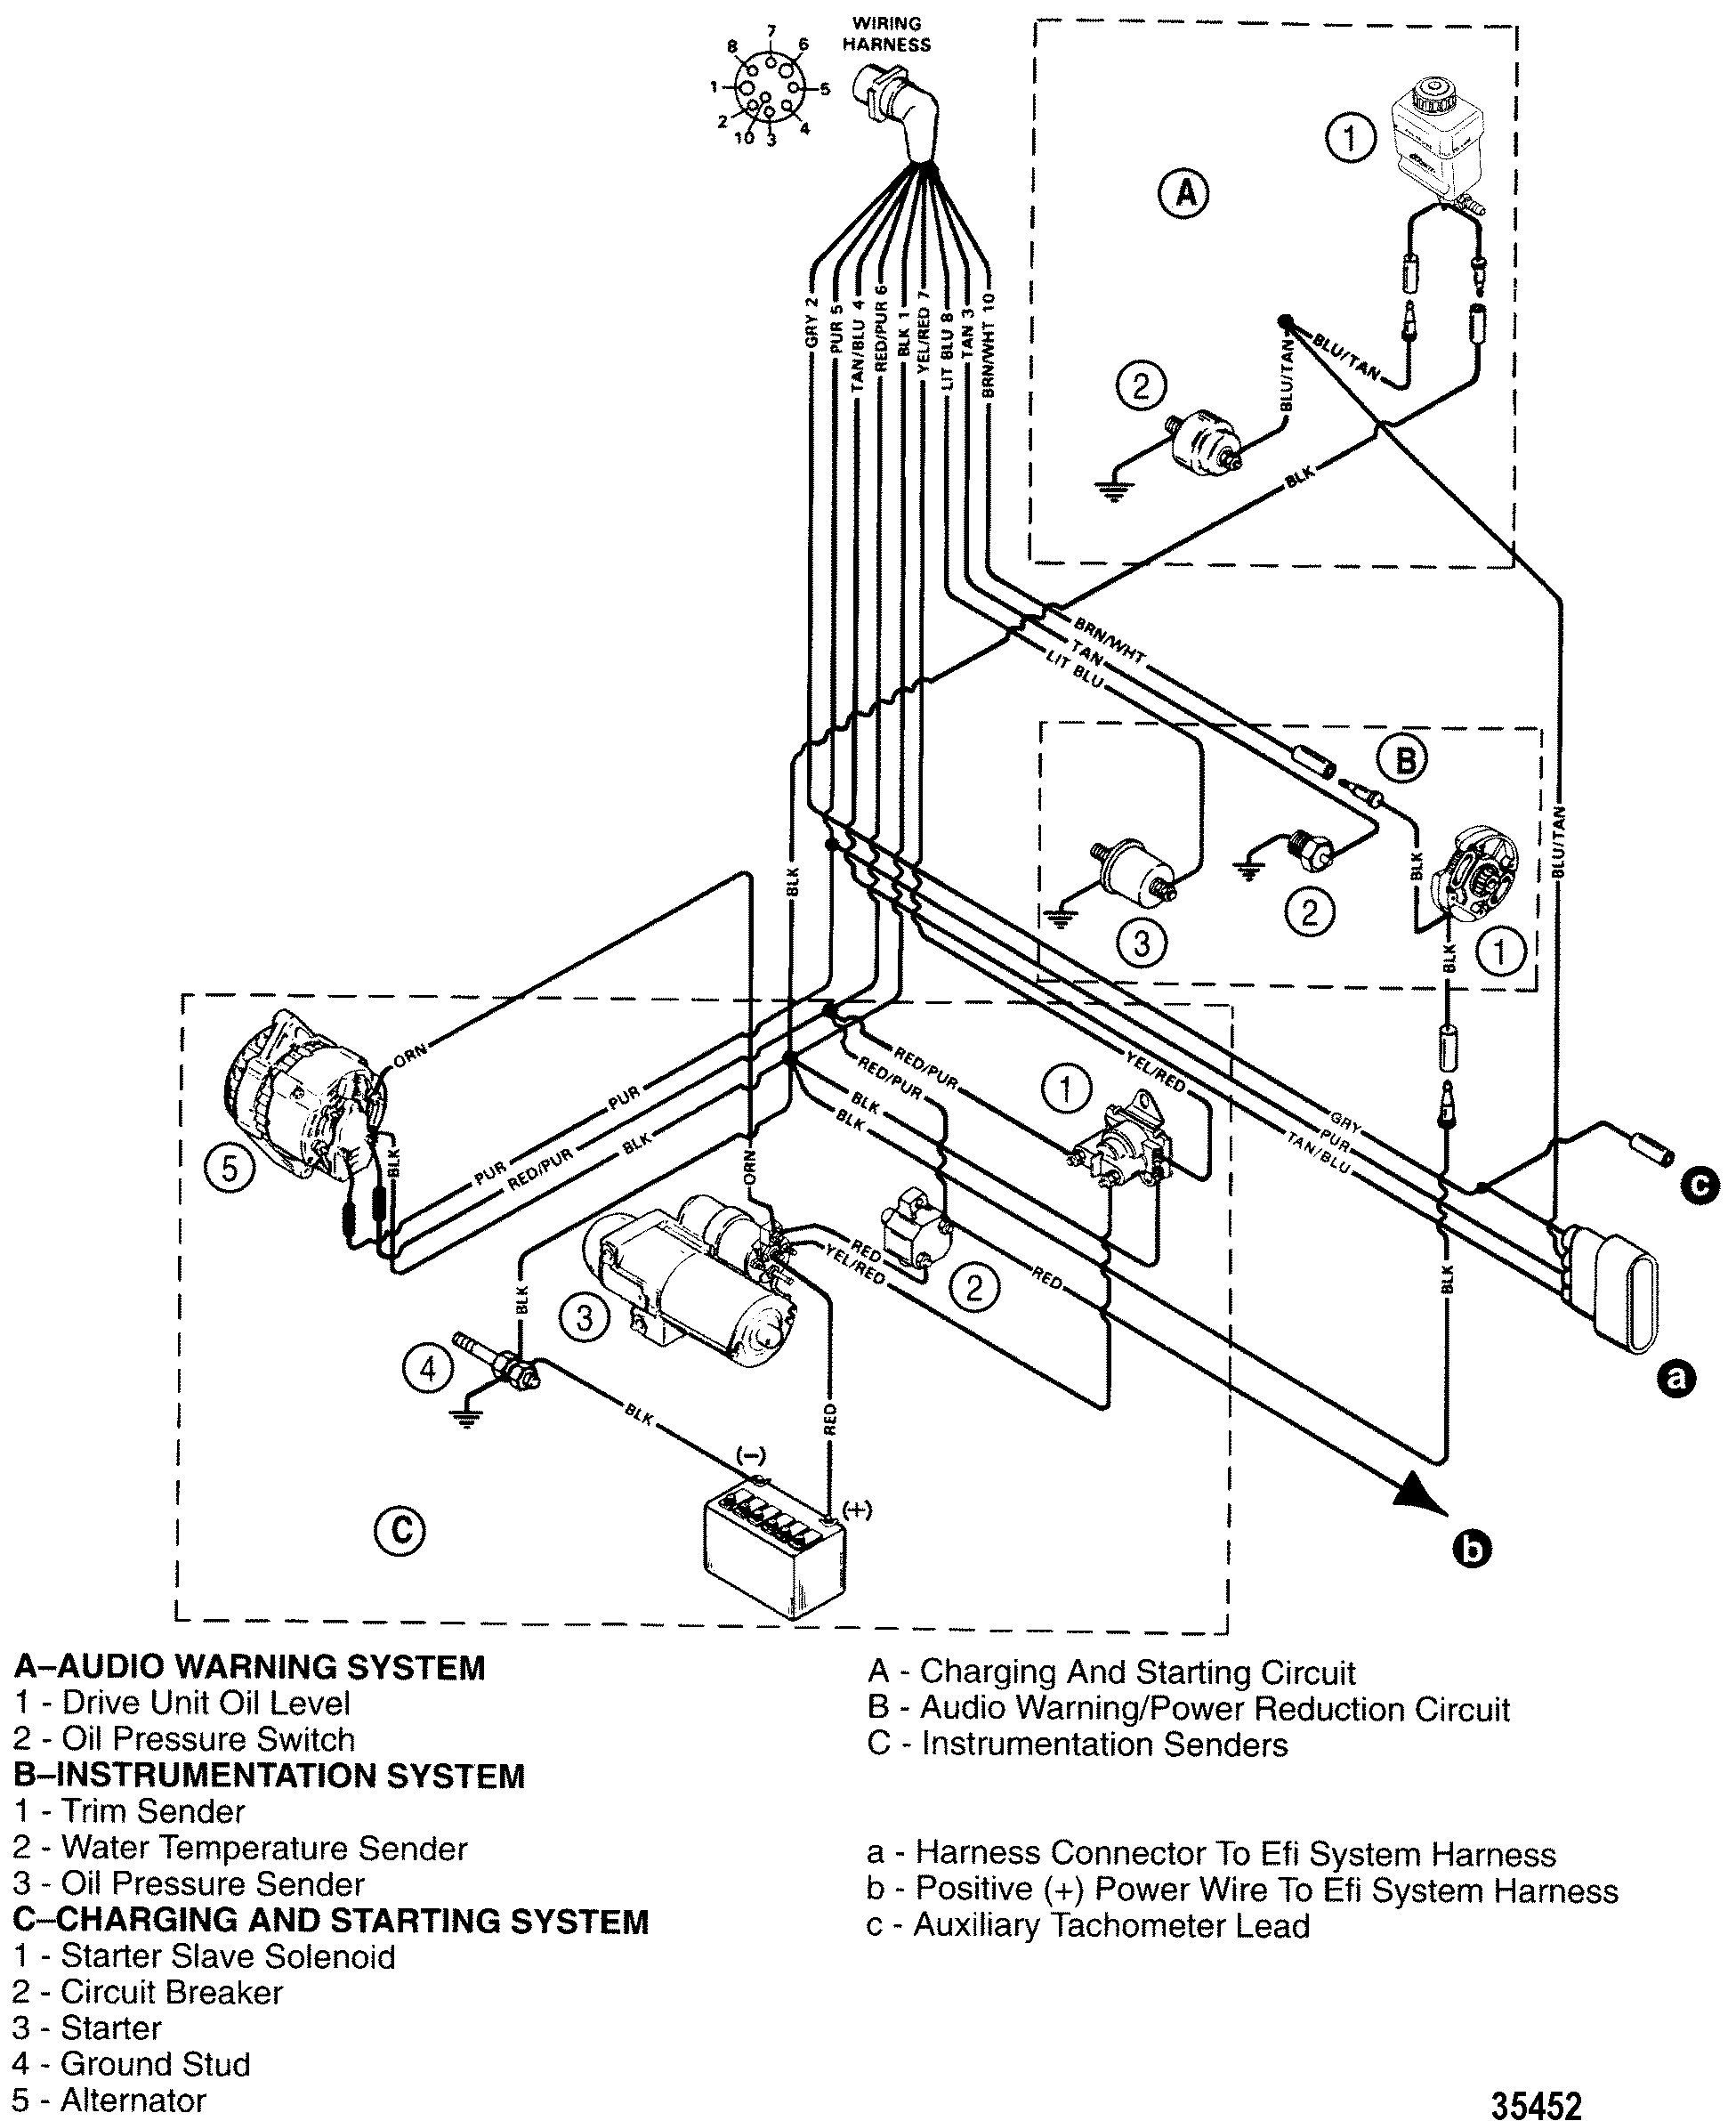 volvo penta outdrive wiring diagram 2 sx parts domainadvice org [ 1951 x 2383 Pixel ]